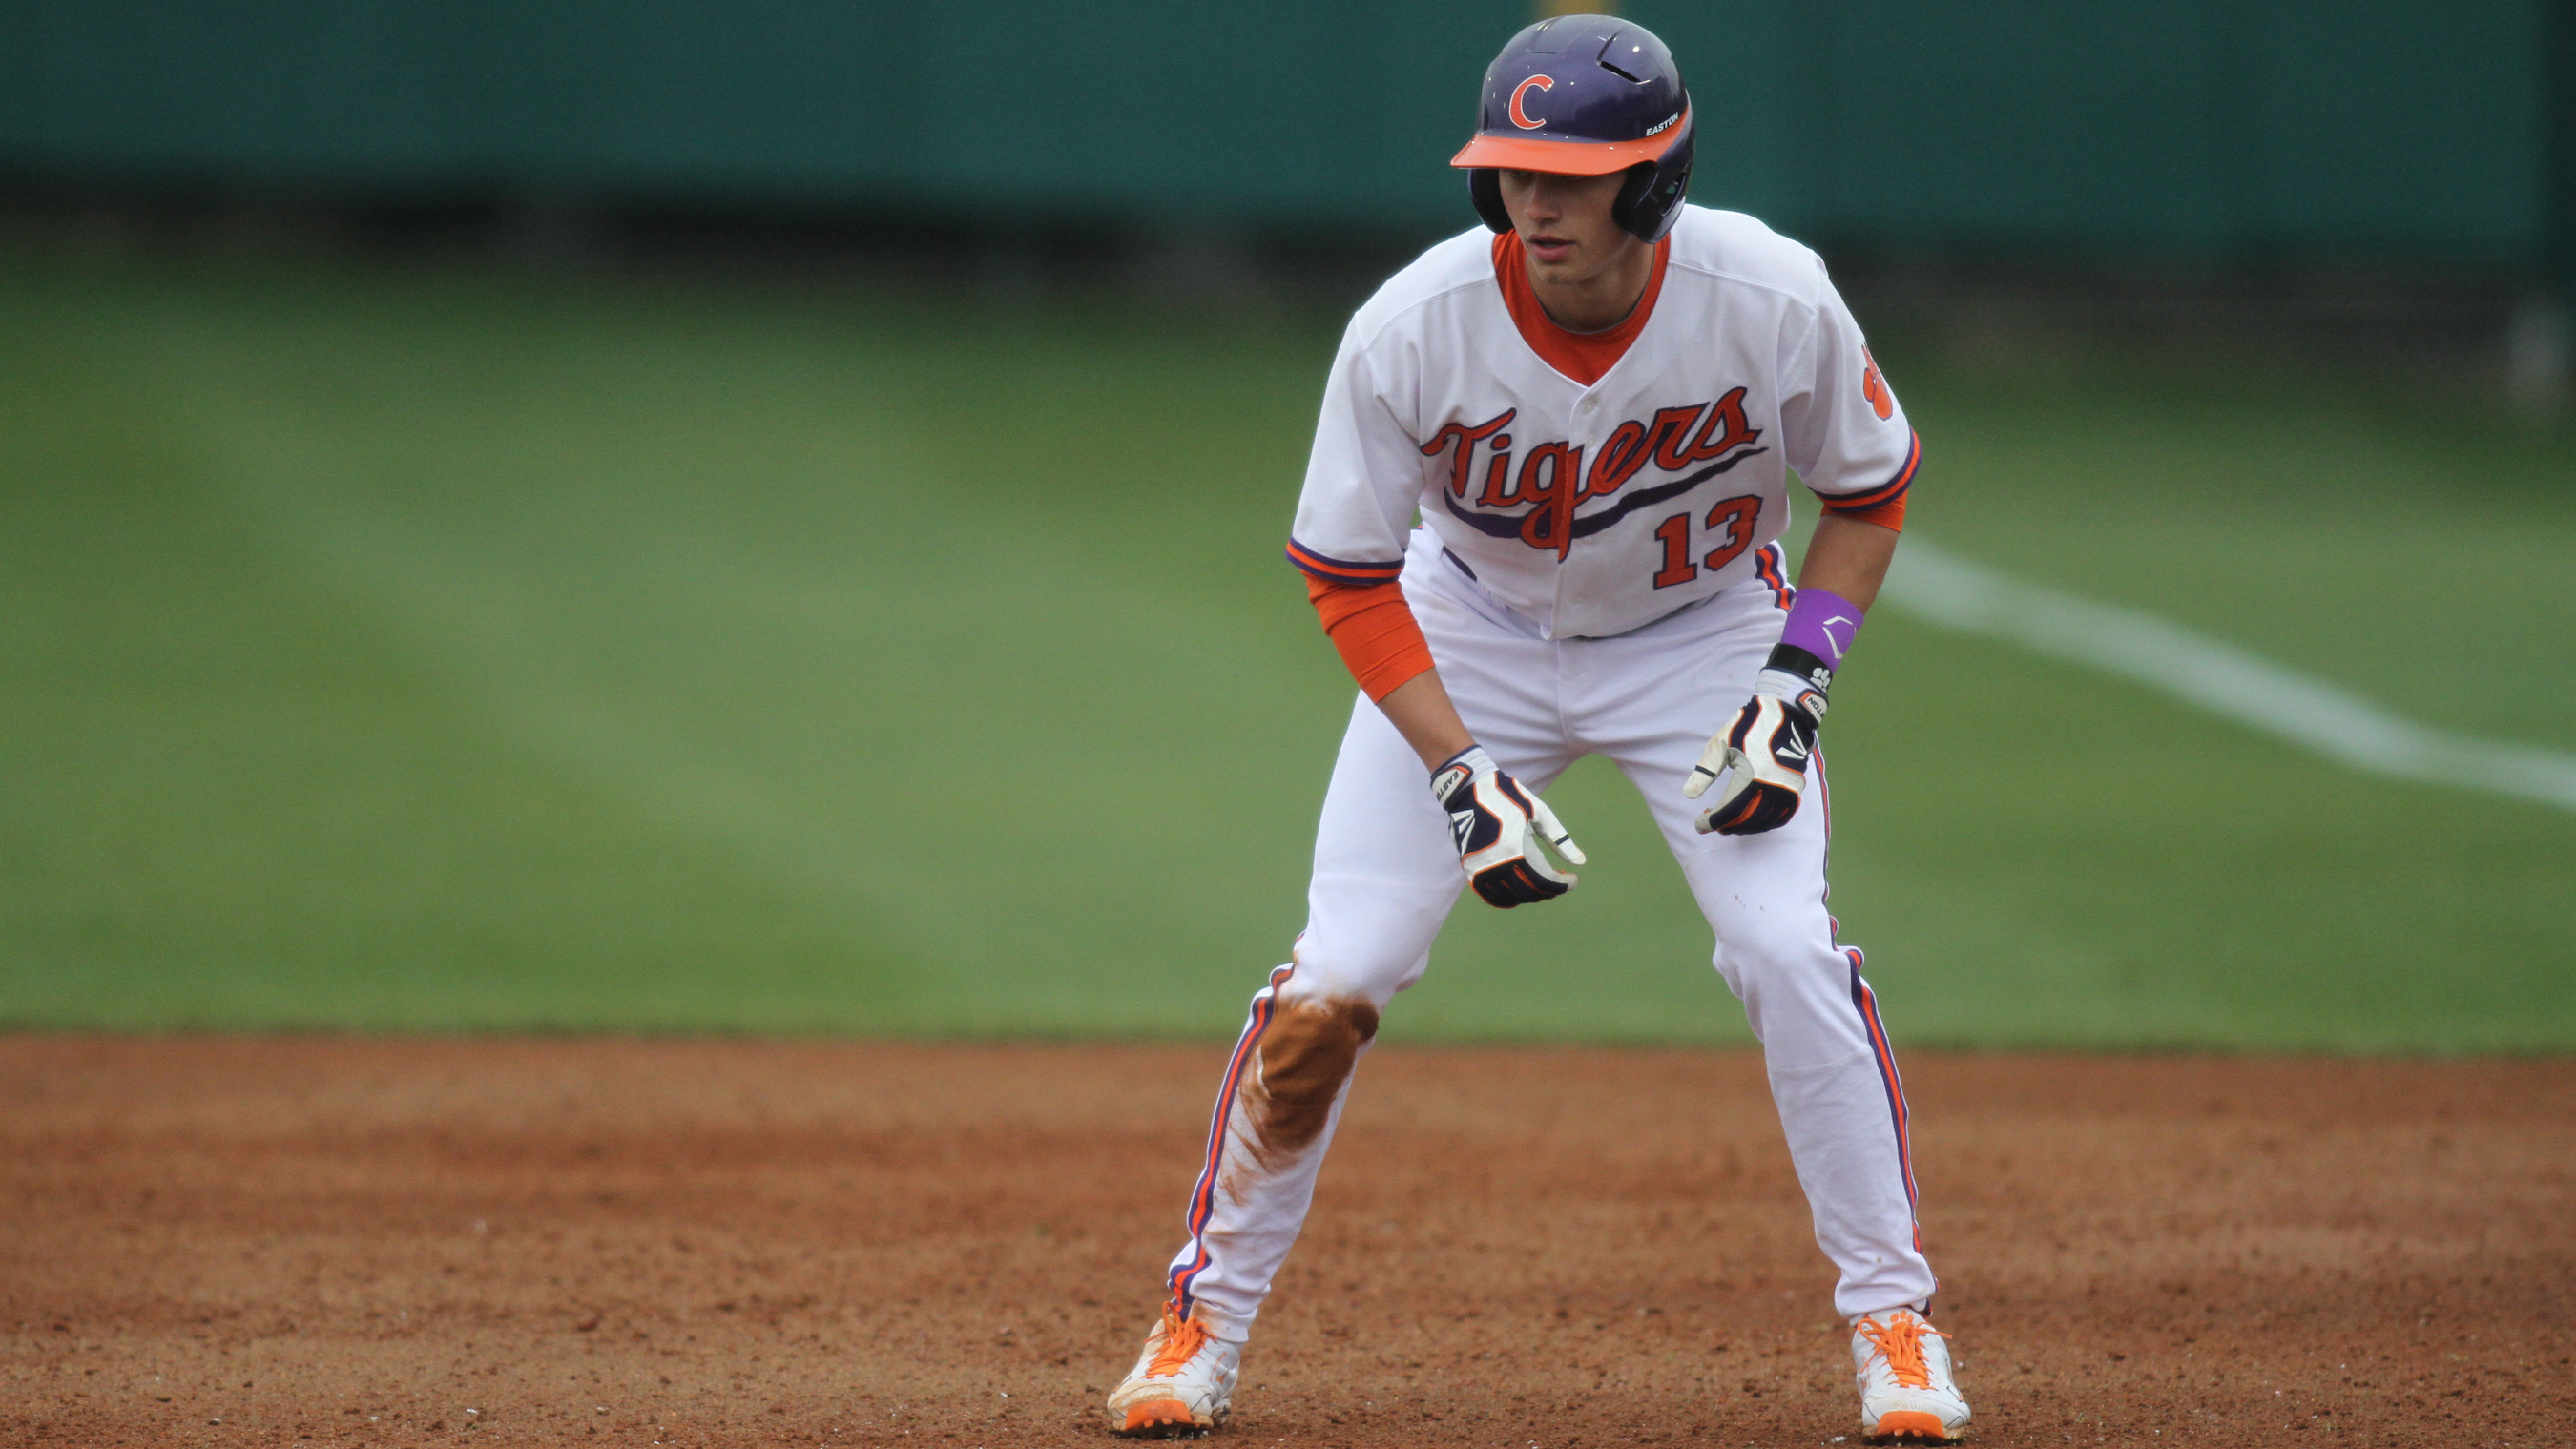 #13 Tigers Rally With Three Runs in Eighth Inning to Top Eagles 9-7 Sunday